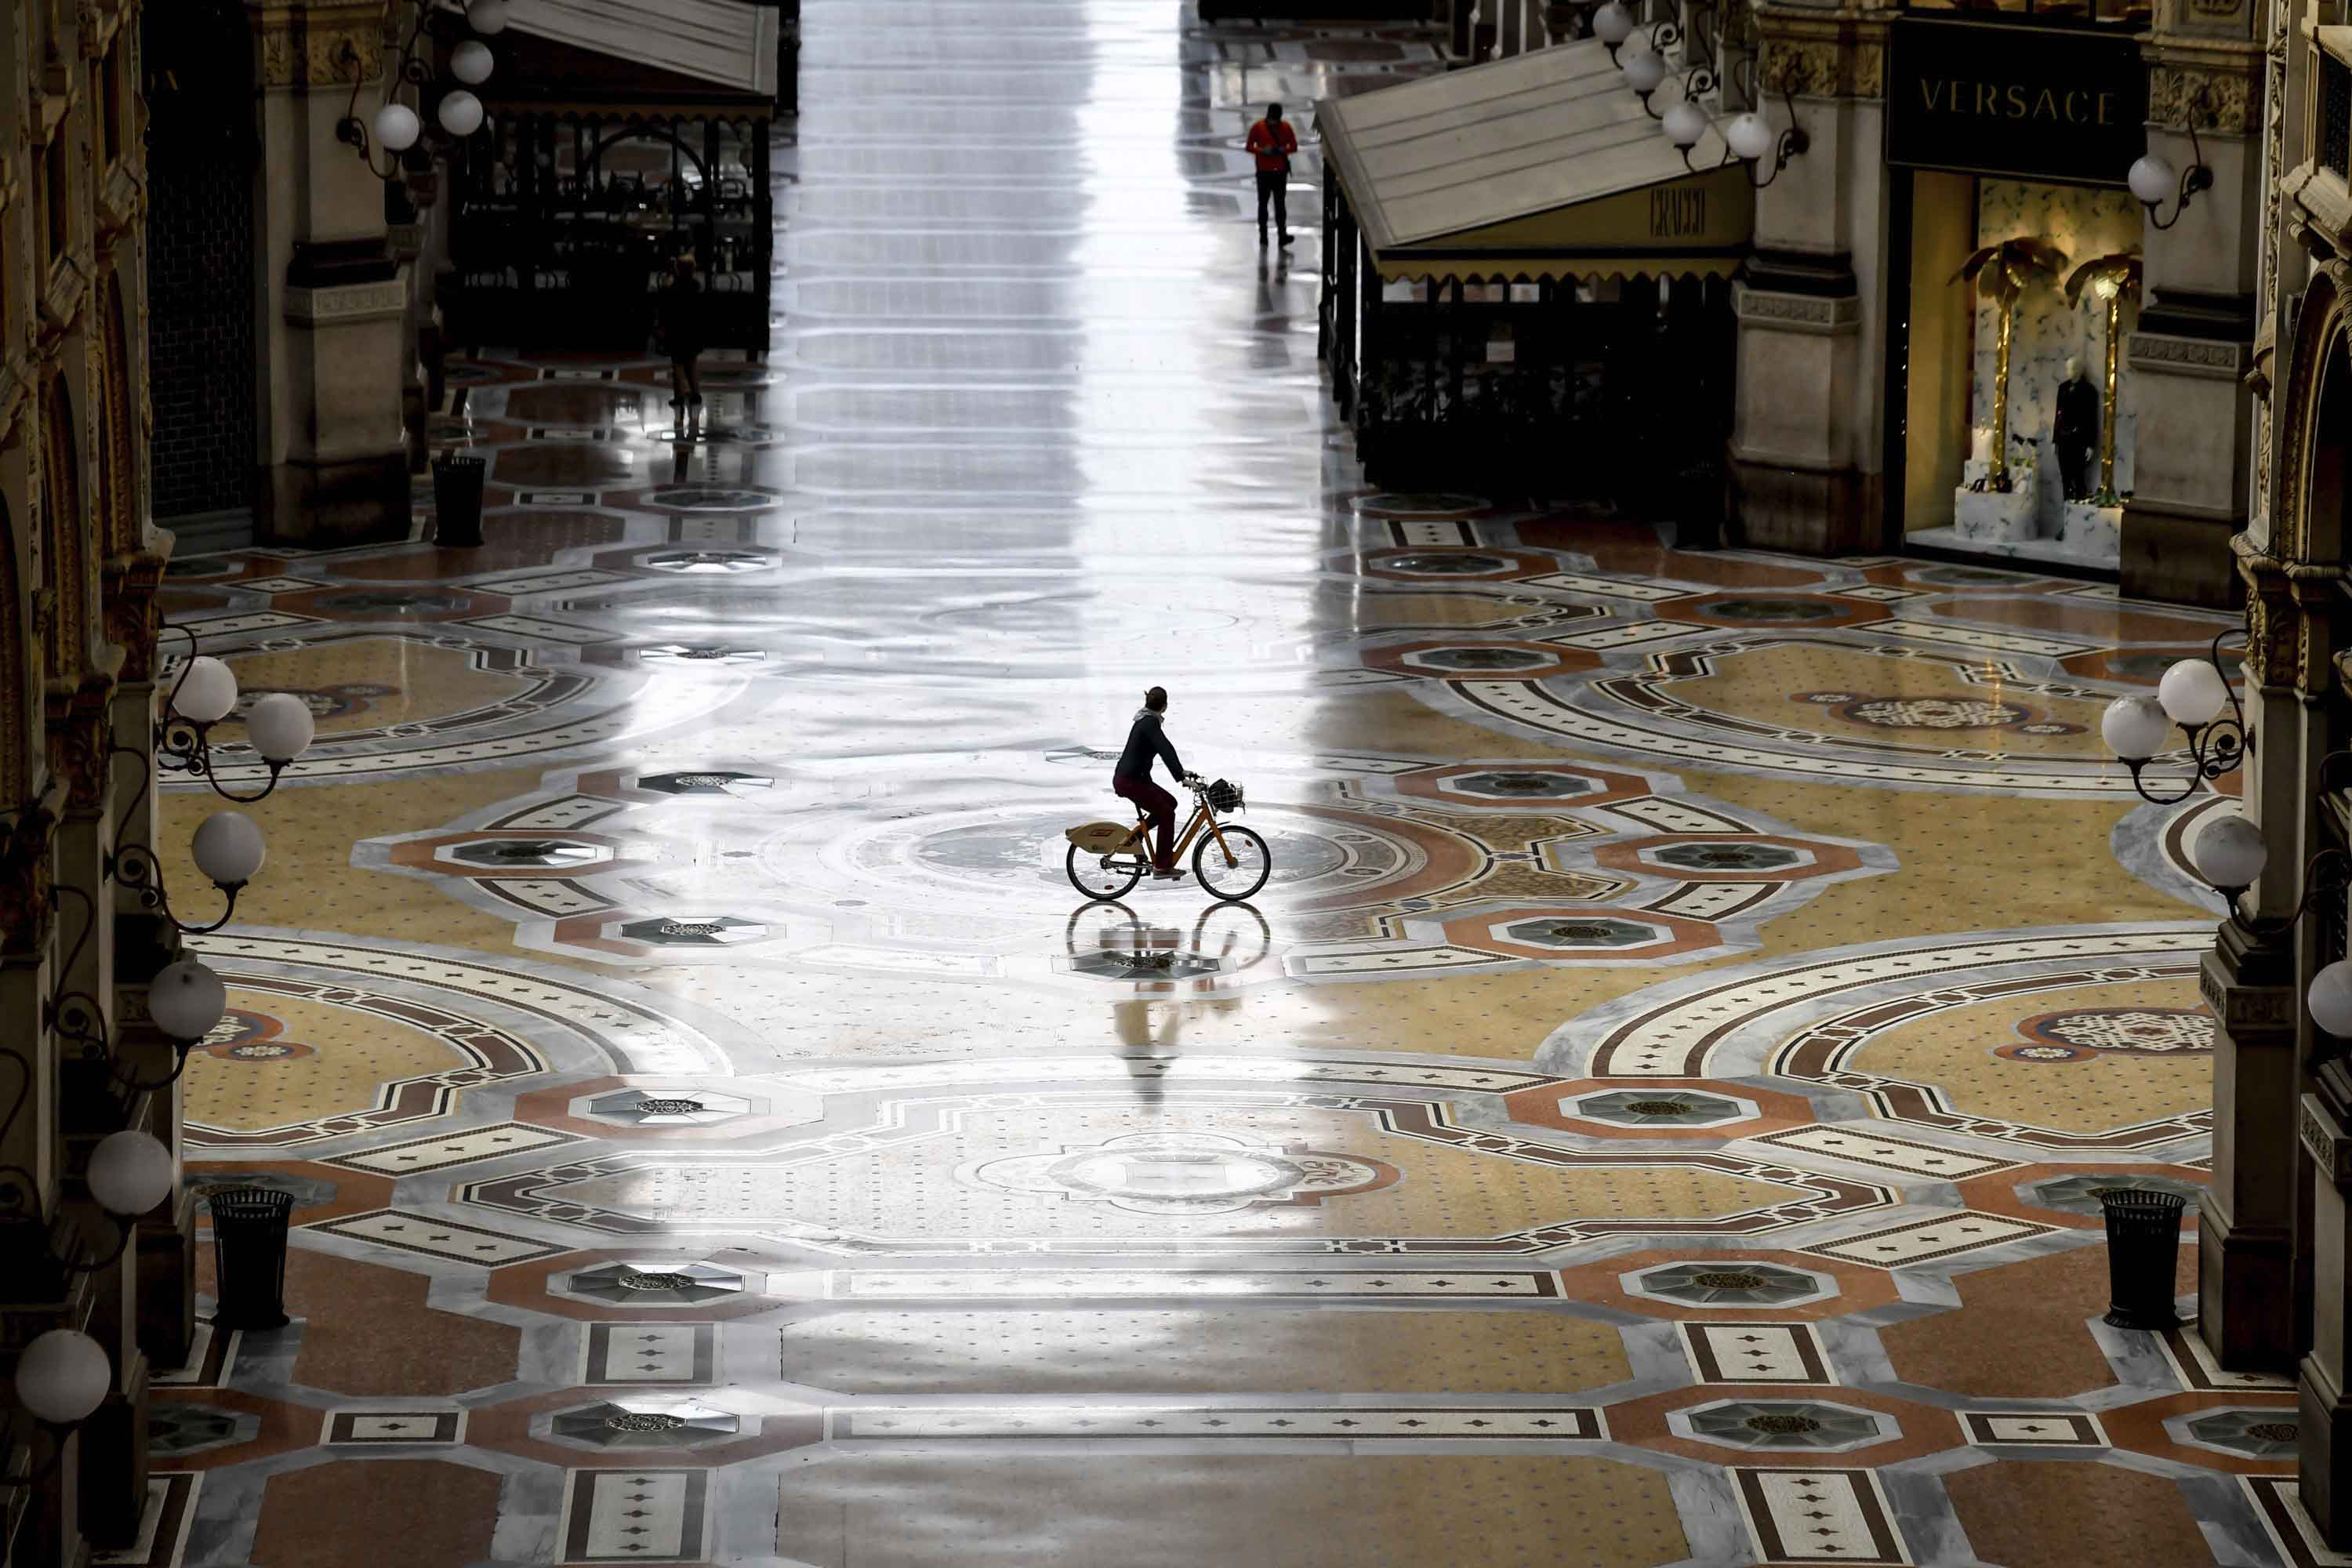 A cyclist rides along an empty Galleria Vittorio Emanuele II shopping arcade during Italy's continued lockdown in Milan on Thursday, April 30.